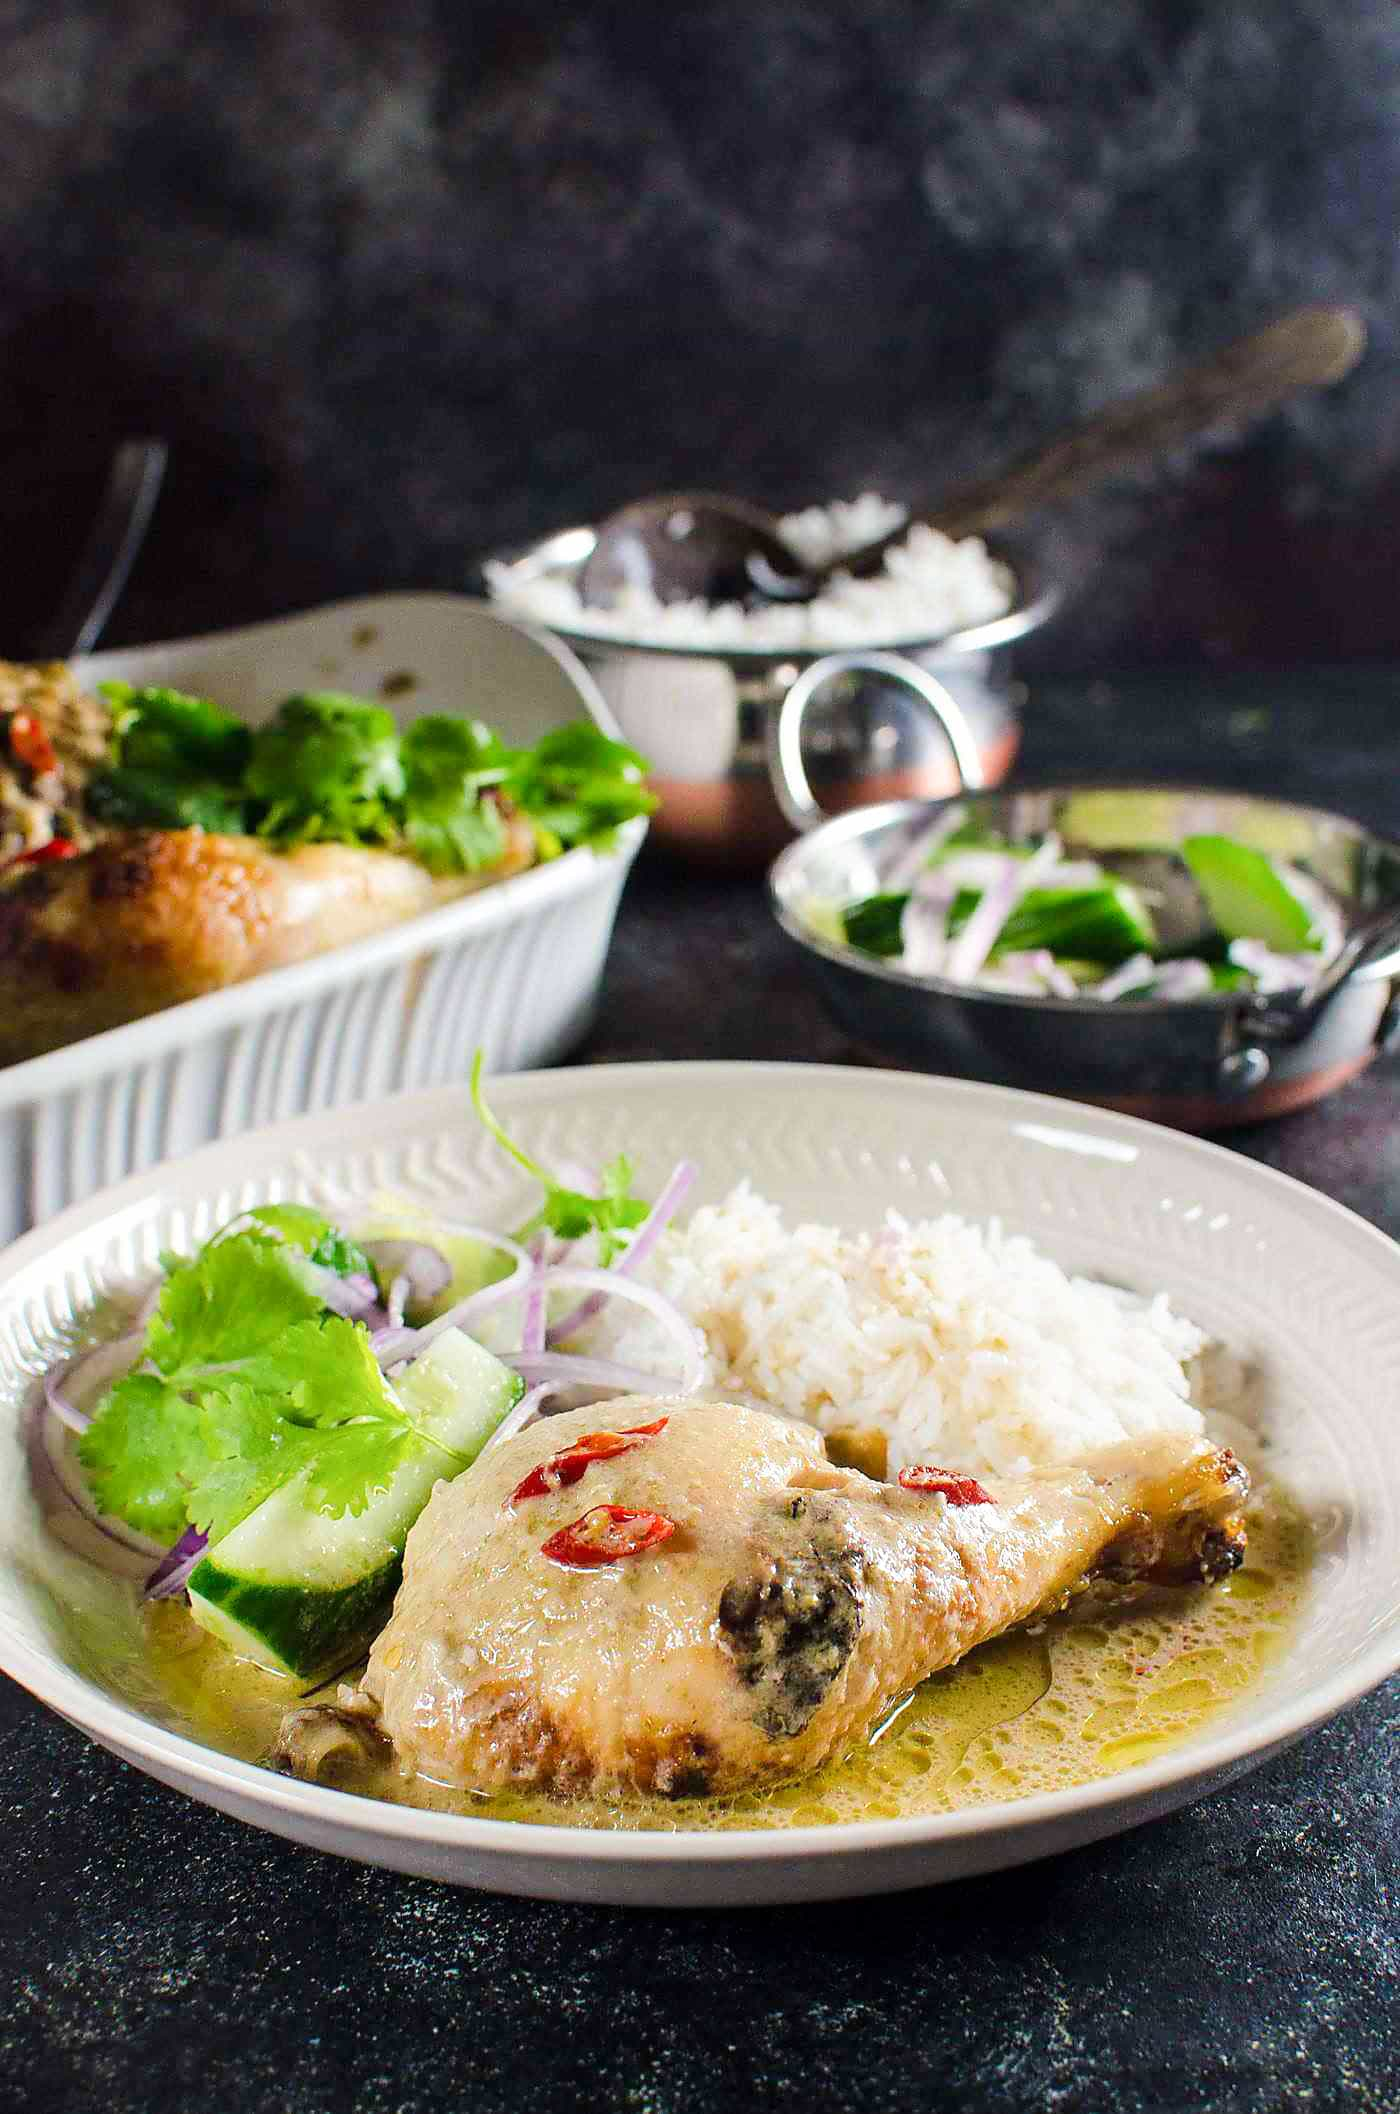 Thai Green Curry Roasted Chicken - Tips to make perfectly cooked, succulent flavorful Roast Chicken with a creamy and spicy Thai Green Curry gravy